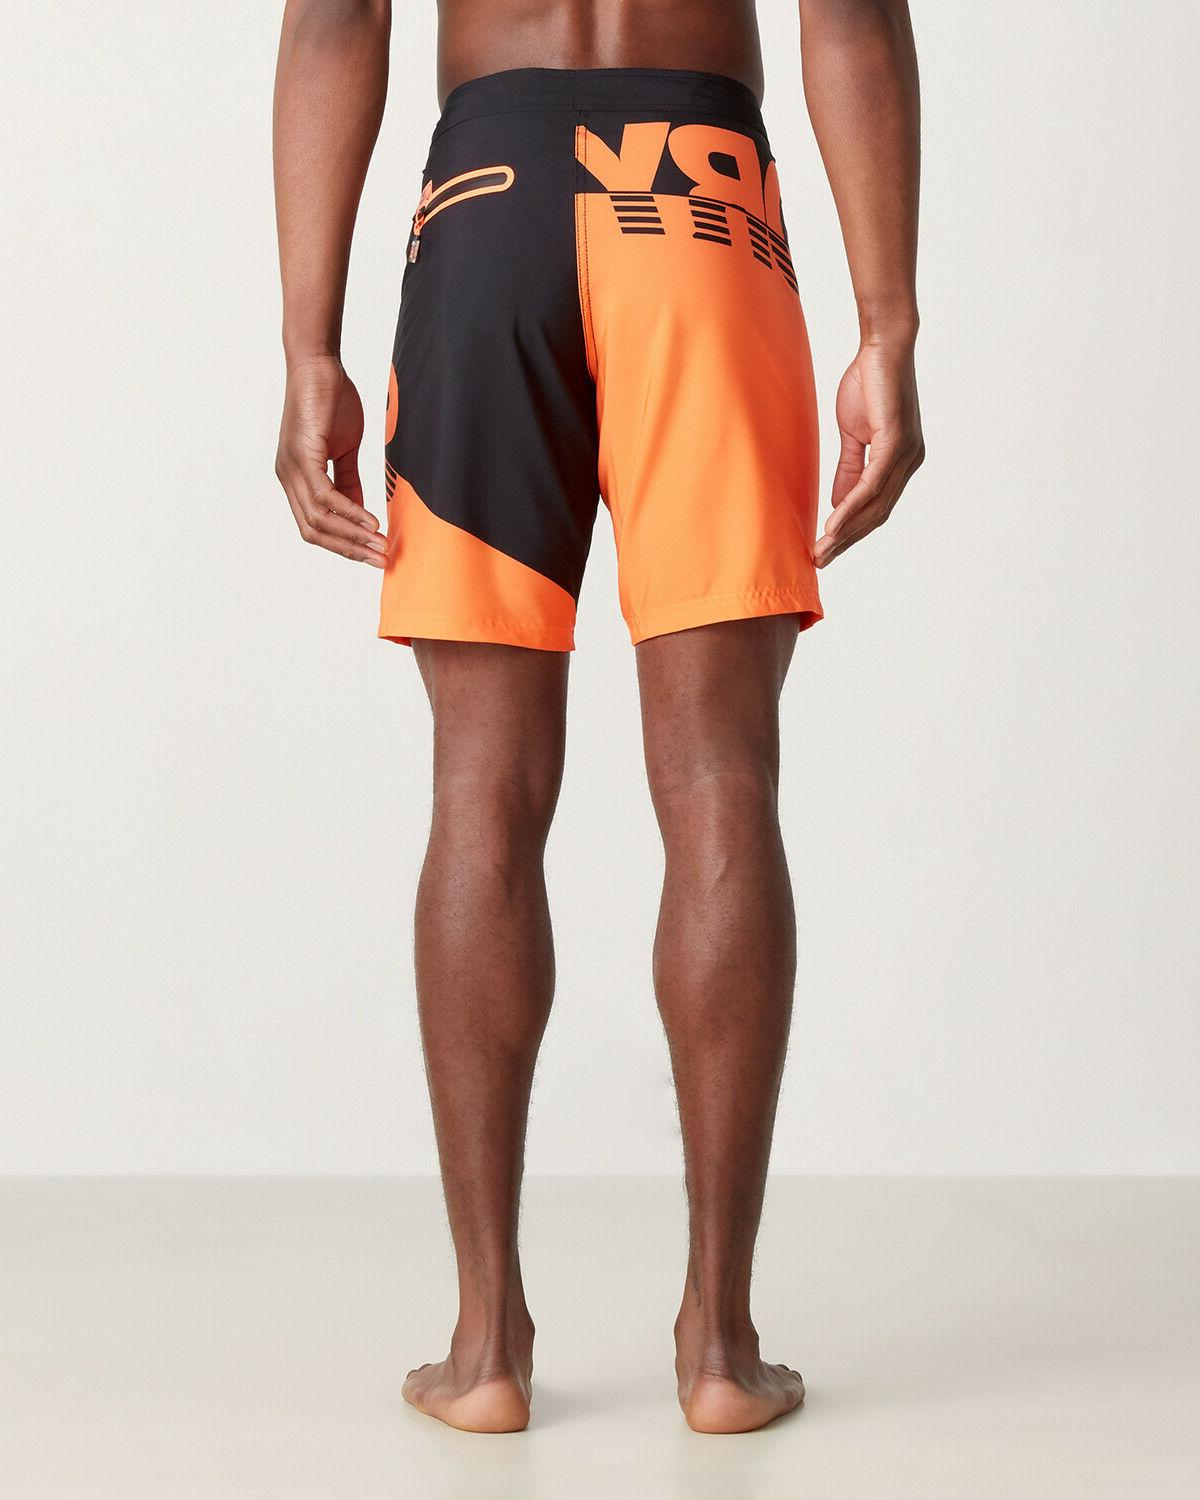 SUPERDRY Board Shorts, NWT, Size